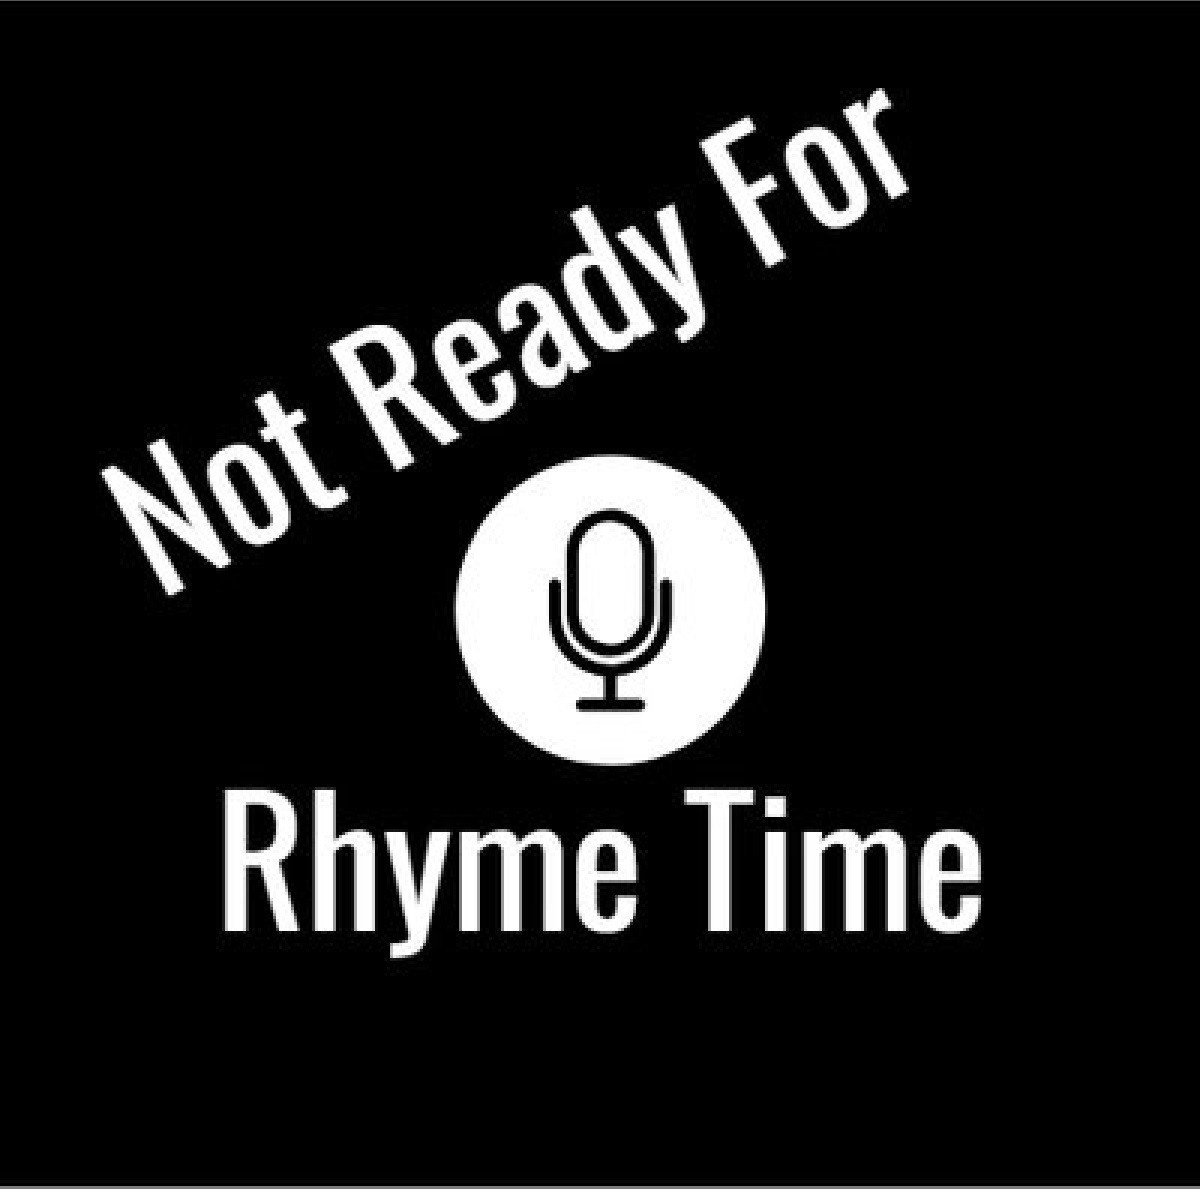 Ep. 39- Happy Anniversary to Not Ready For Rhyme Time!